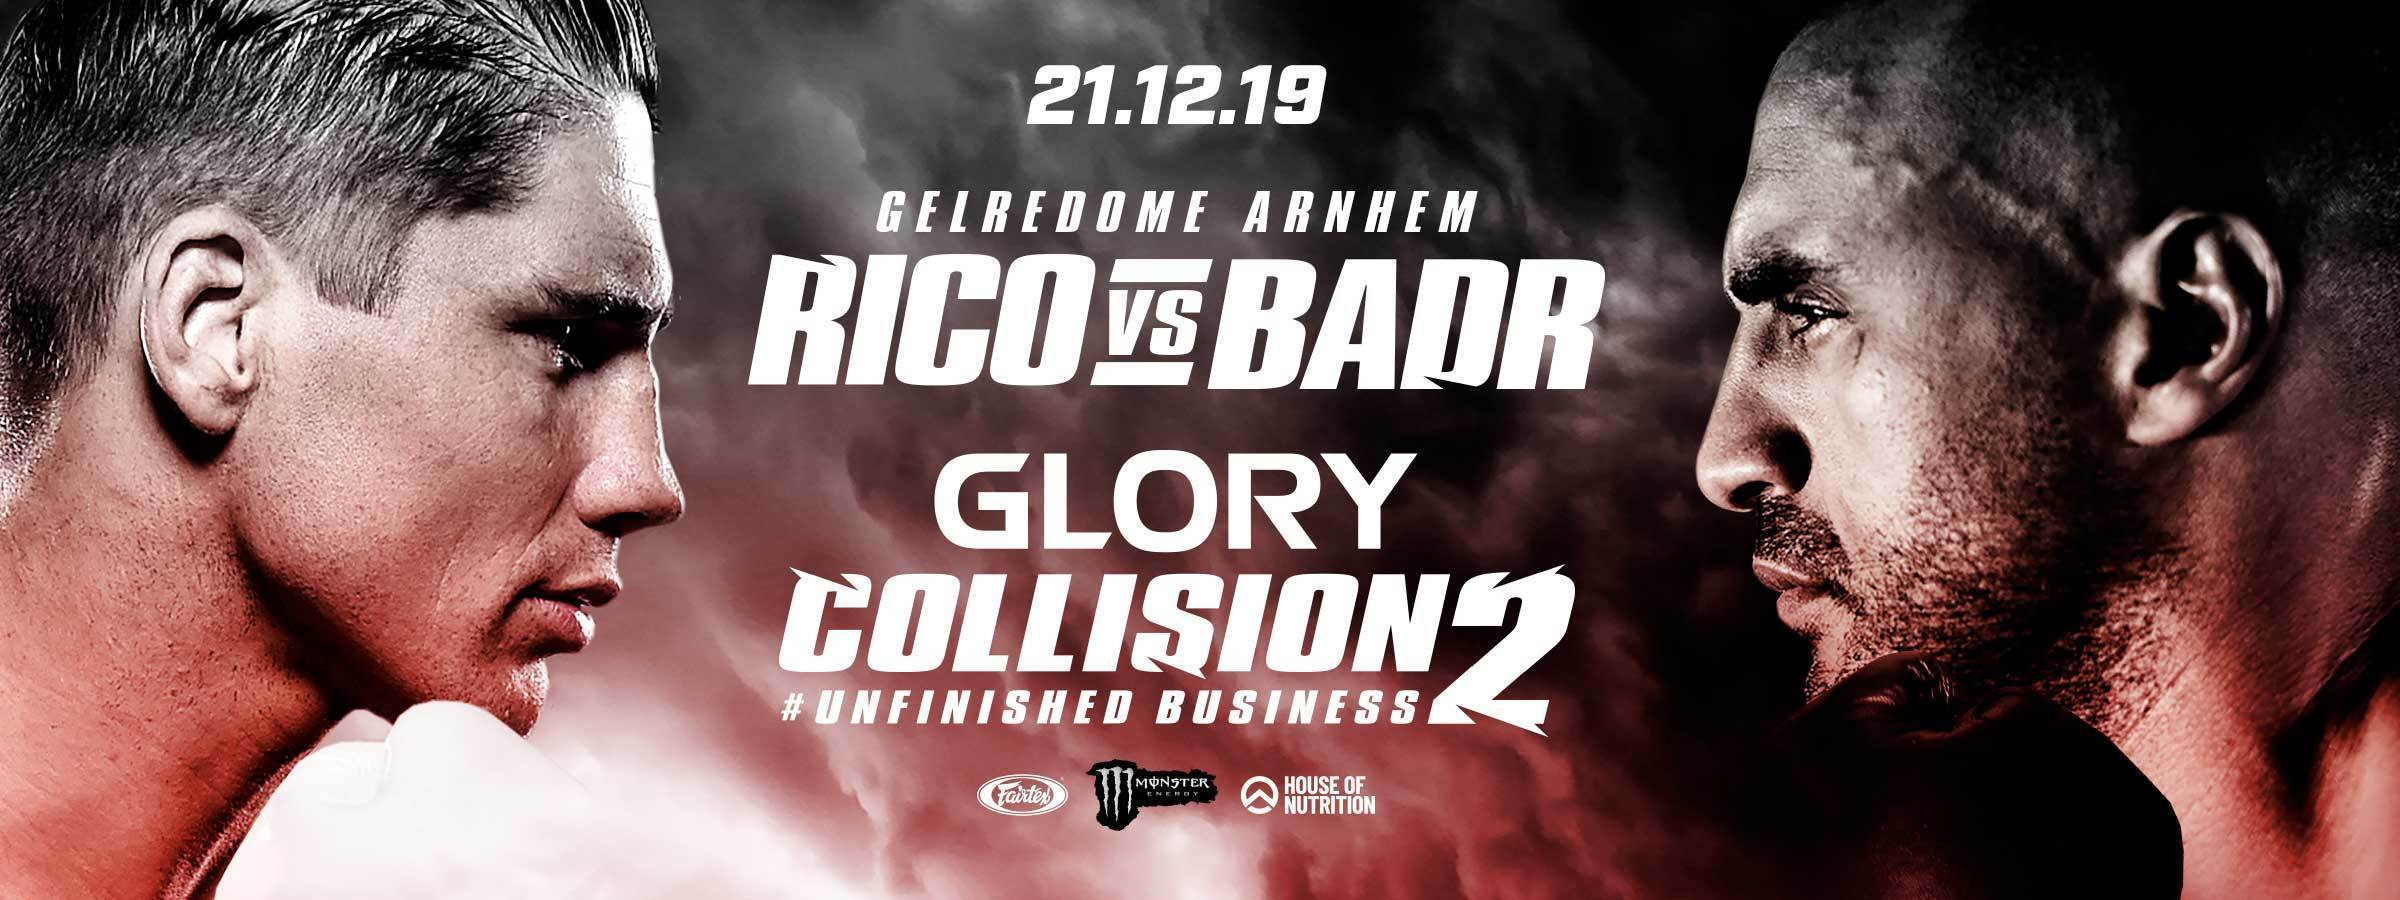 GLORY: COLLISION 2 GENERAL SALE COMMENCES WEDNESDAY